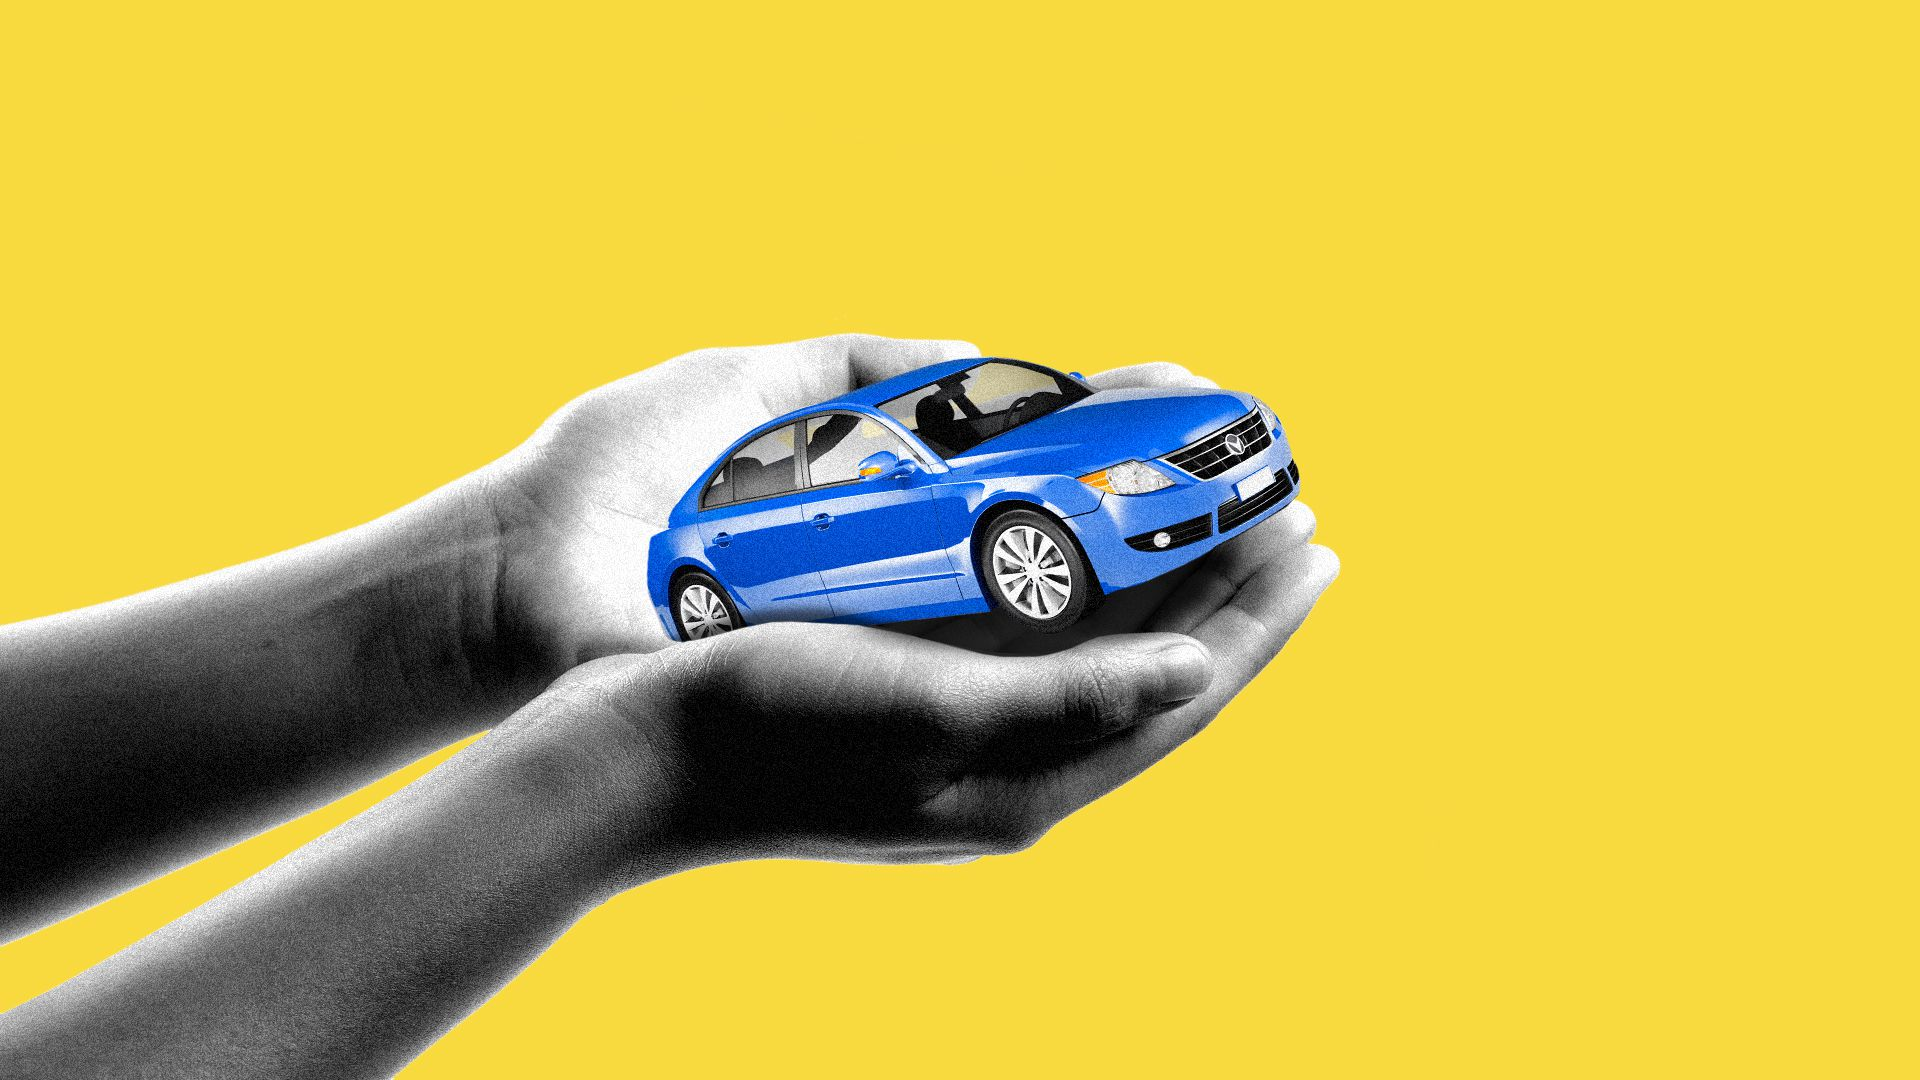 Illustration of cupped hands holding out a car.